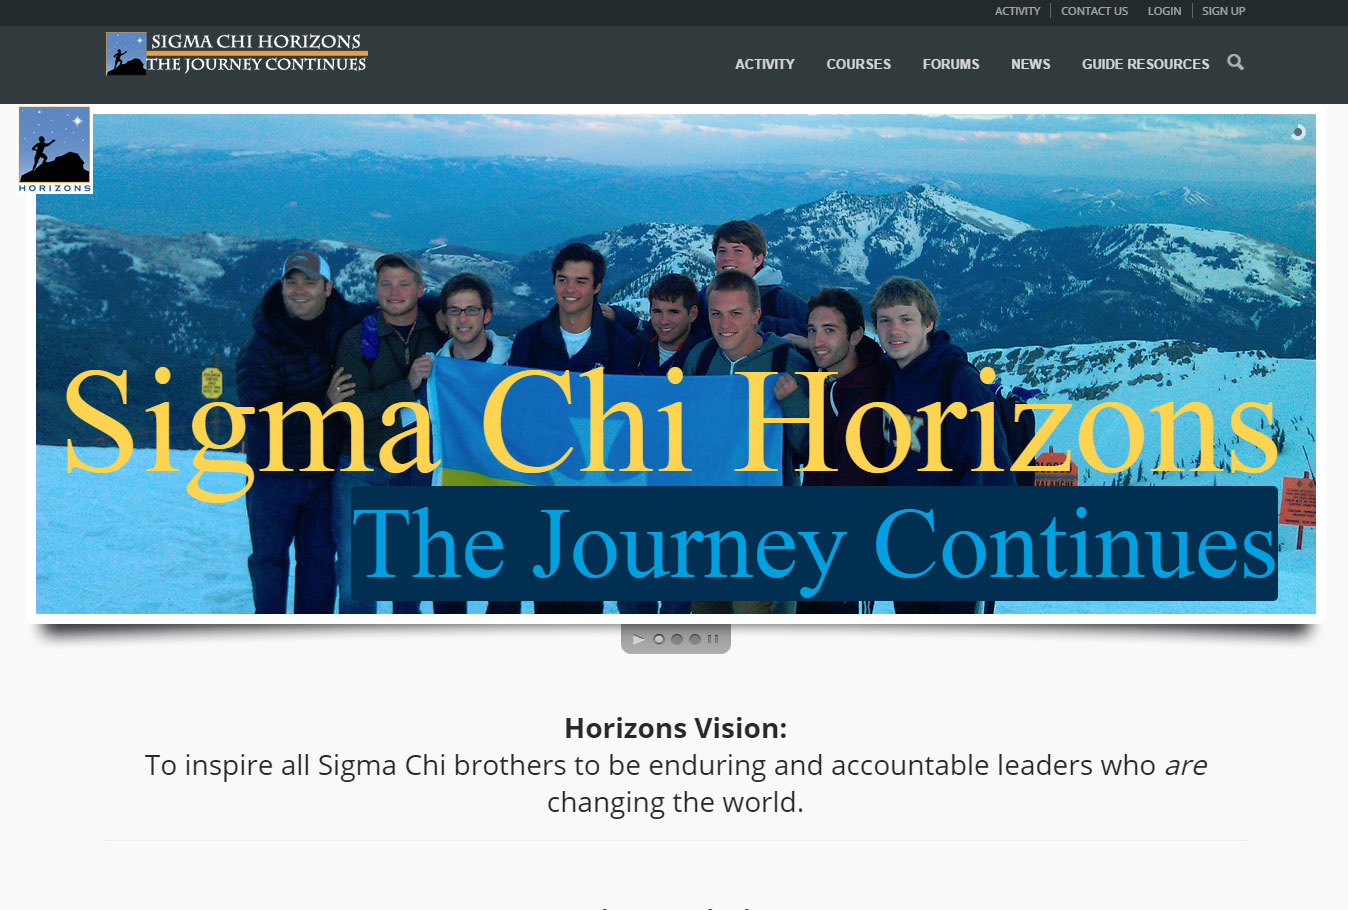 Sigma Chi Horizons Leadership Summit